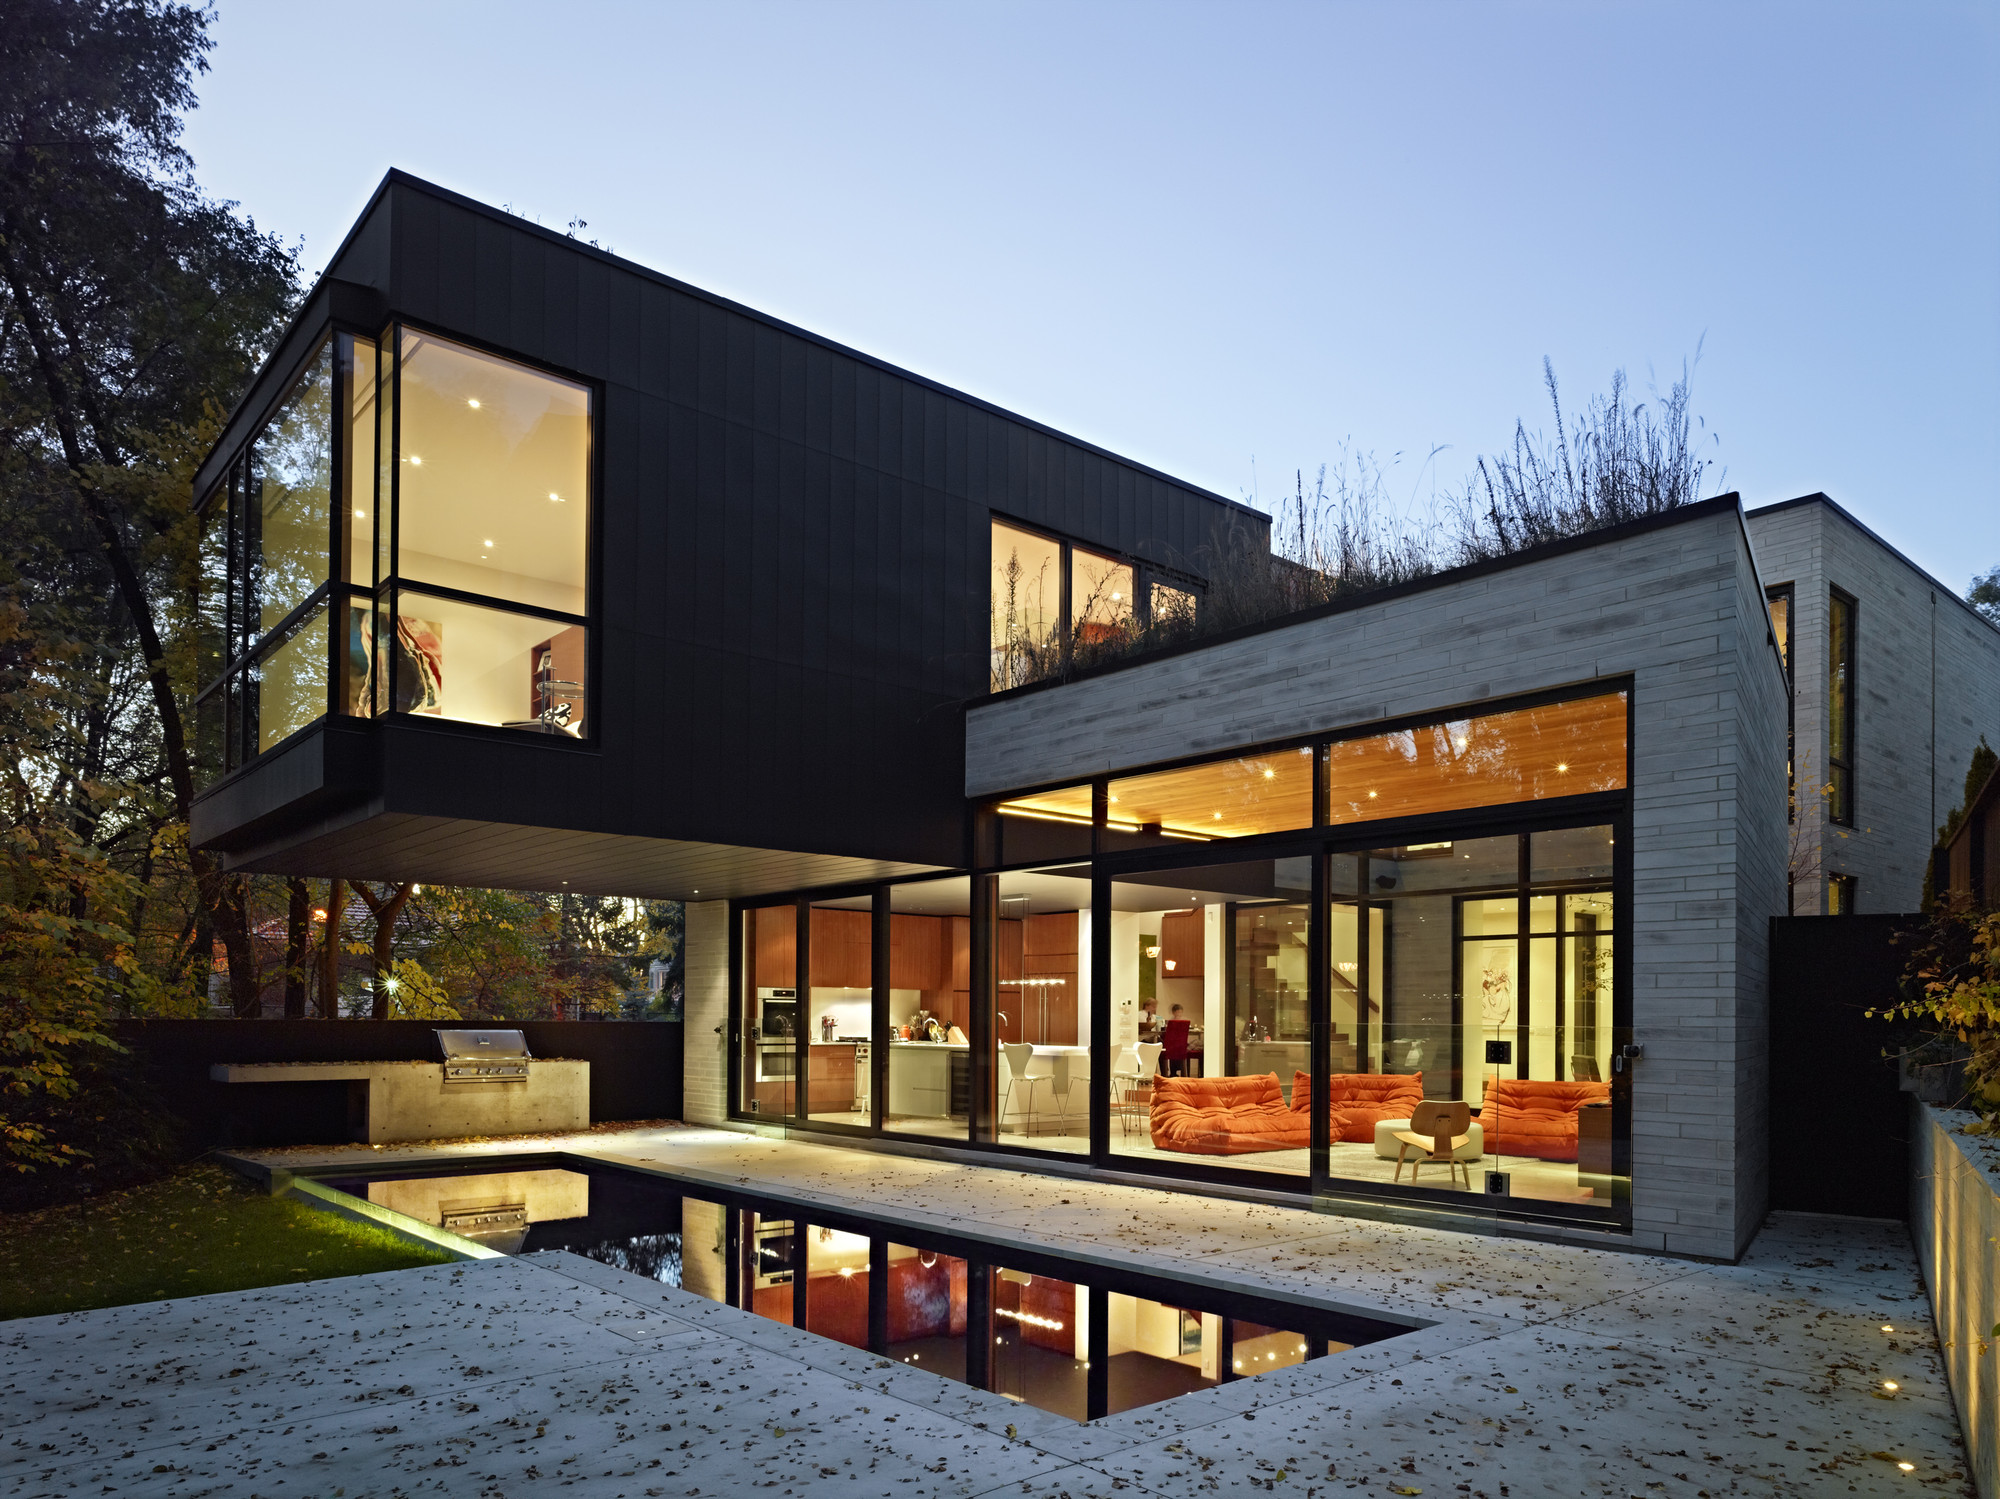 Cedarvale Ravine House / Drew Mandel Architects, Courtesy of Drew Mandel Architects